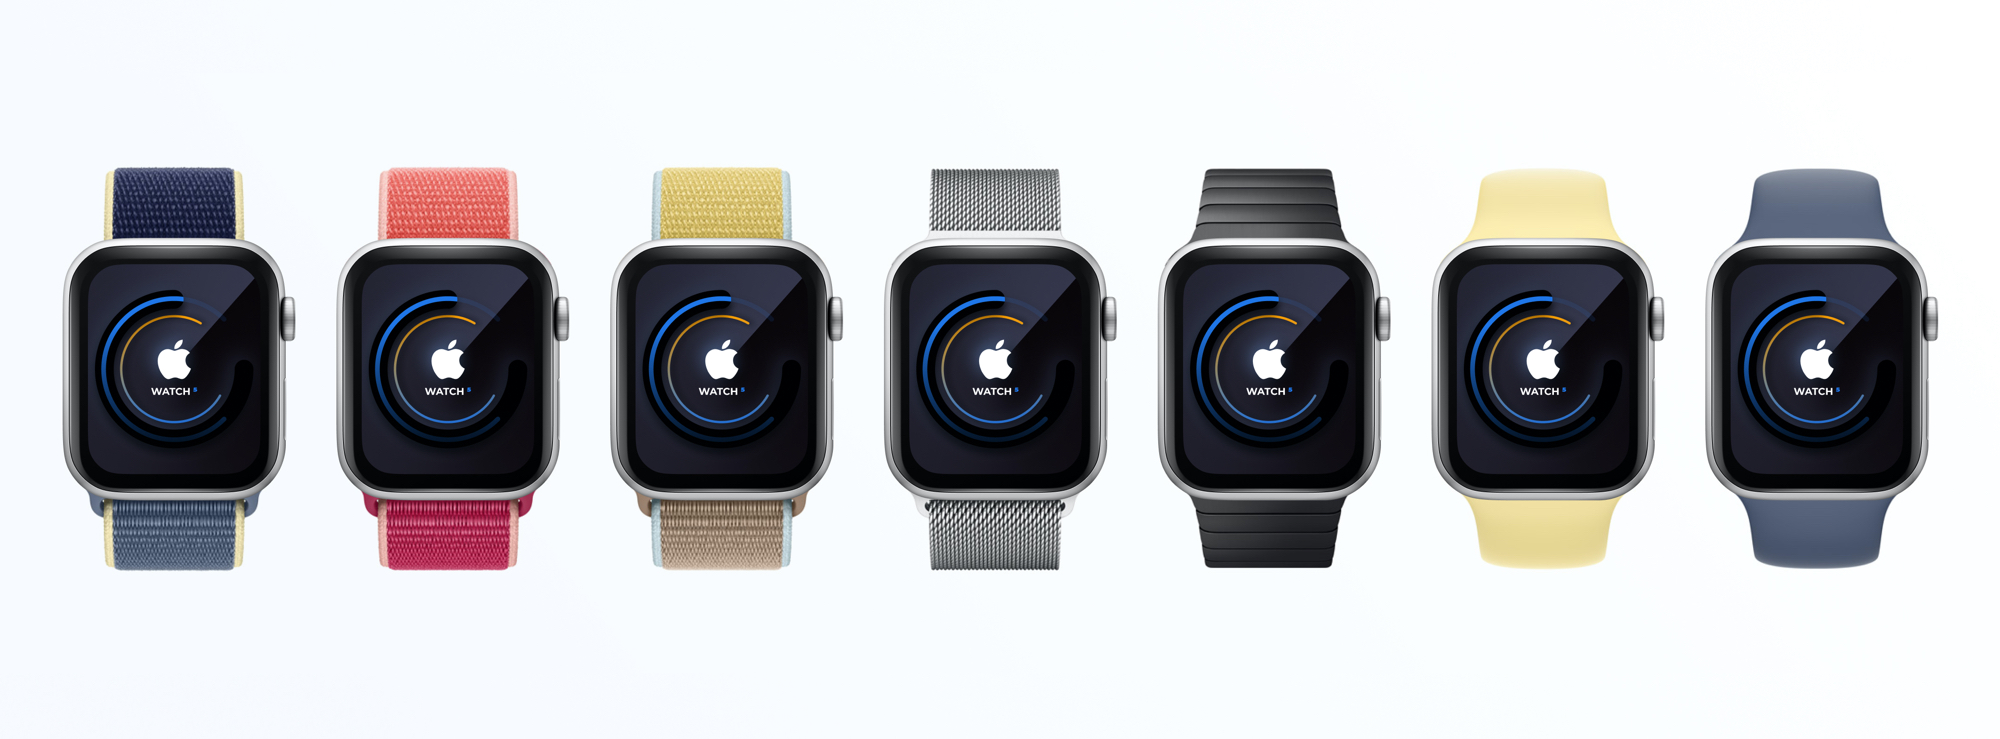 Apple Watch Mockup for Figma - In this mockup, you'll find an Apple watch ready to showcase your beautiful design solutions. For those that are starting designing for smartwatches or for the expert ones, having a simple, easy and fast way to show your ideas and concepts is a must.